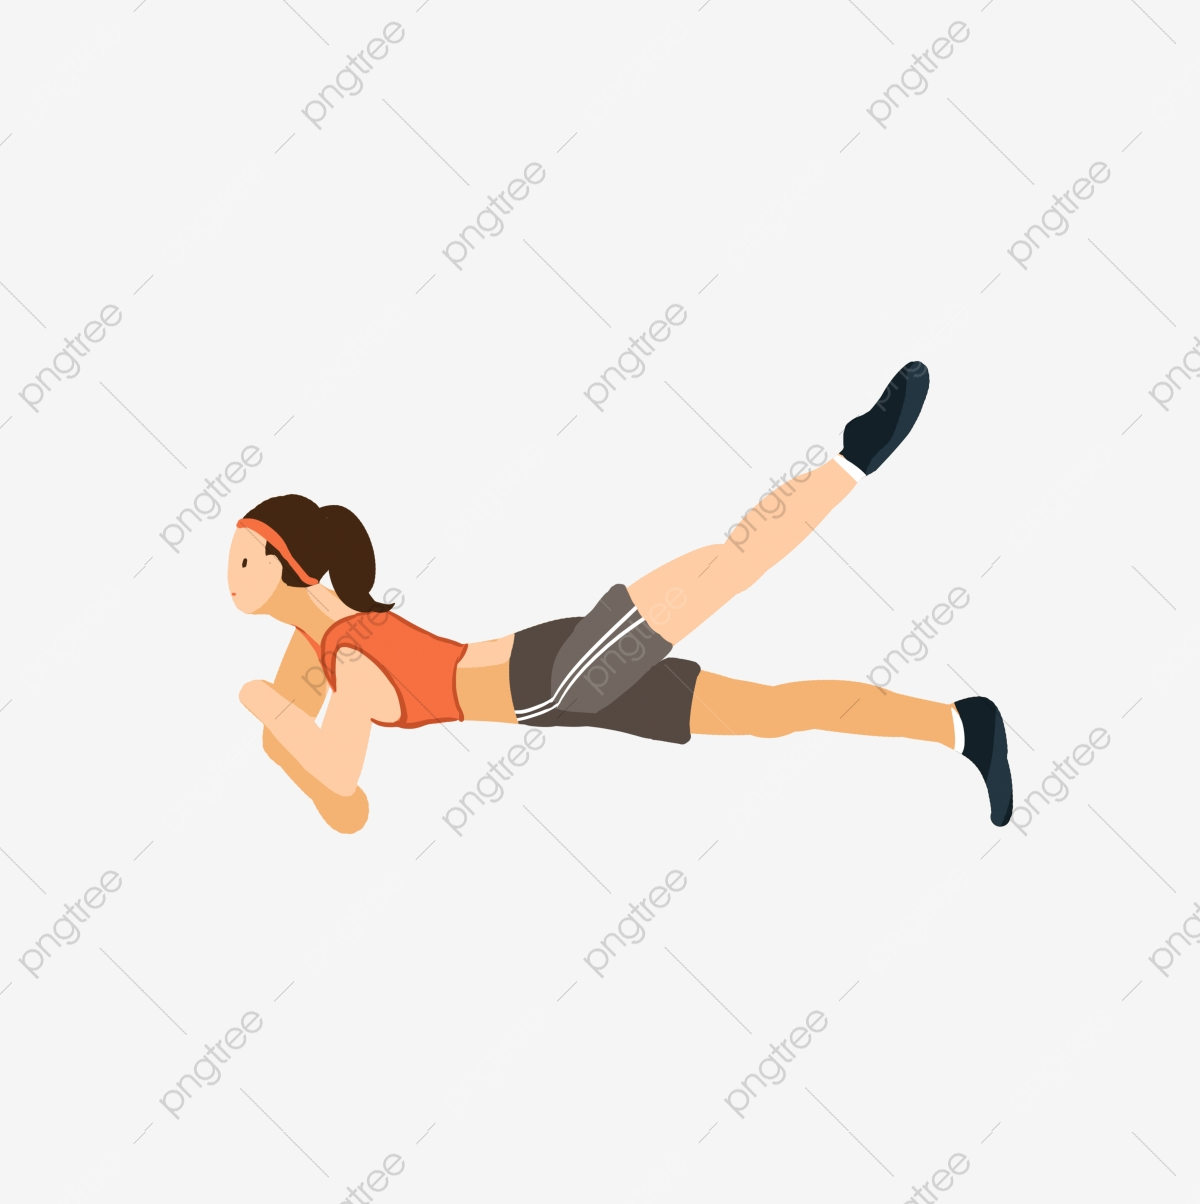 Sports Fitness Weight Loss Leg Exercise Fitness Weight Loss Png Transparent Clipart Image And Psd File For Free Download